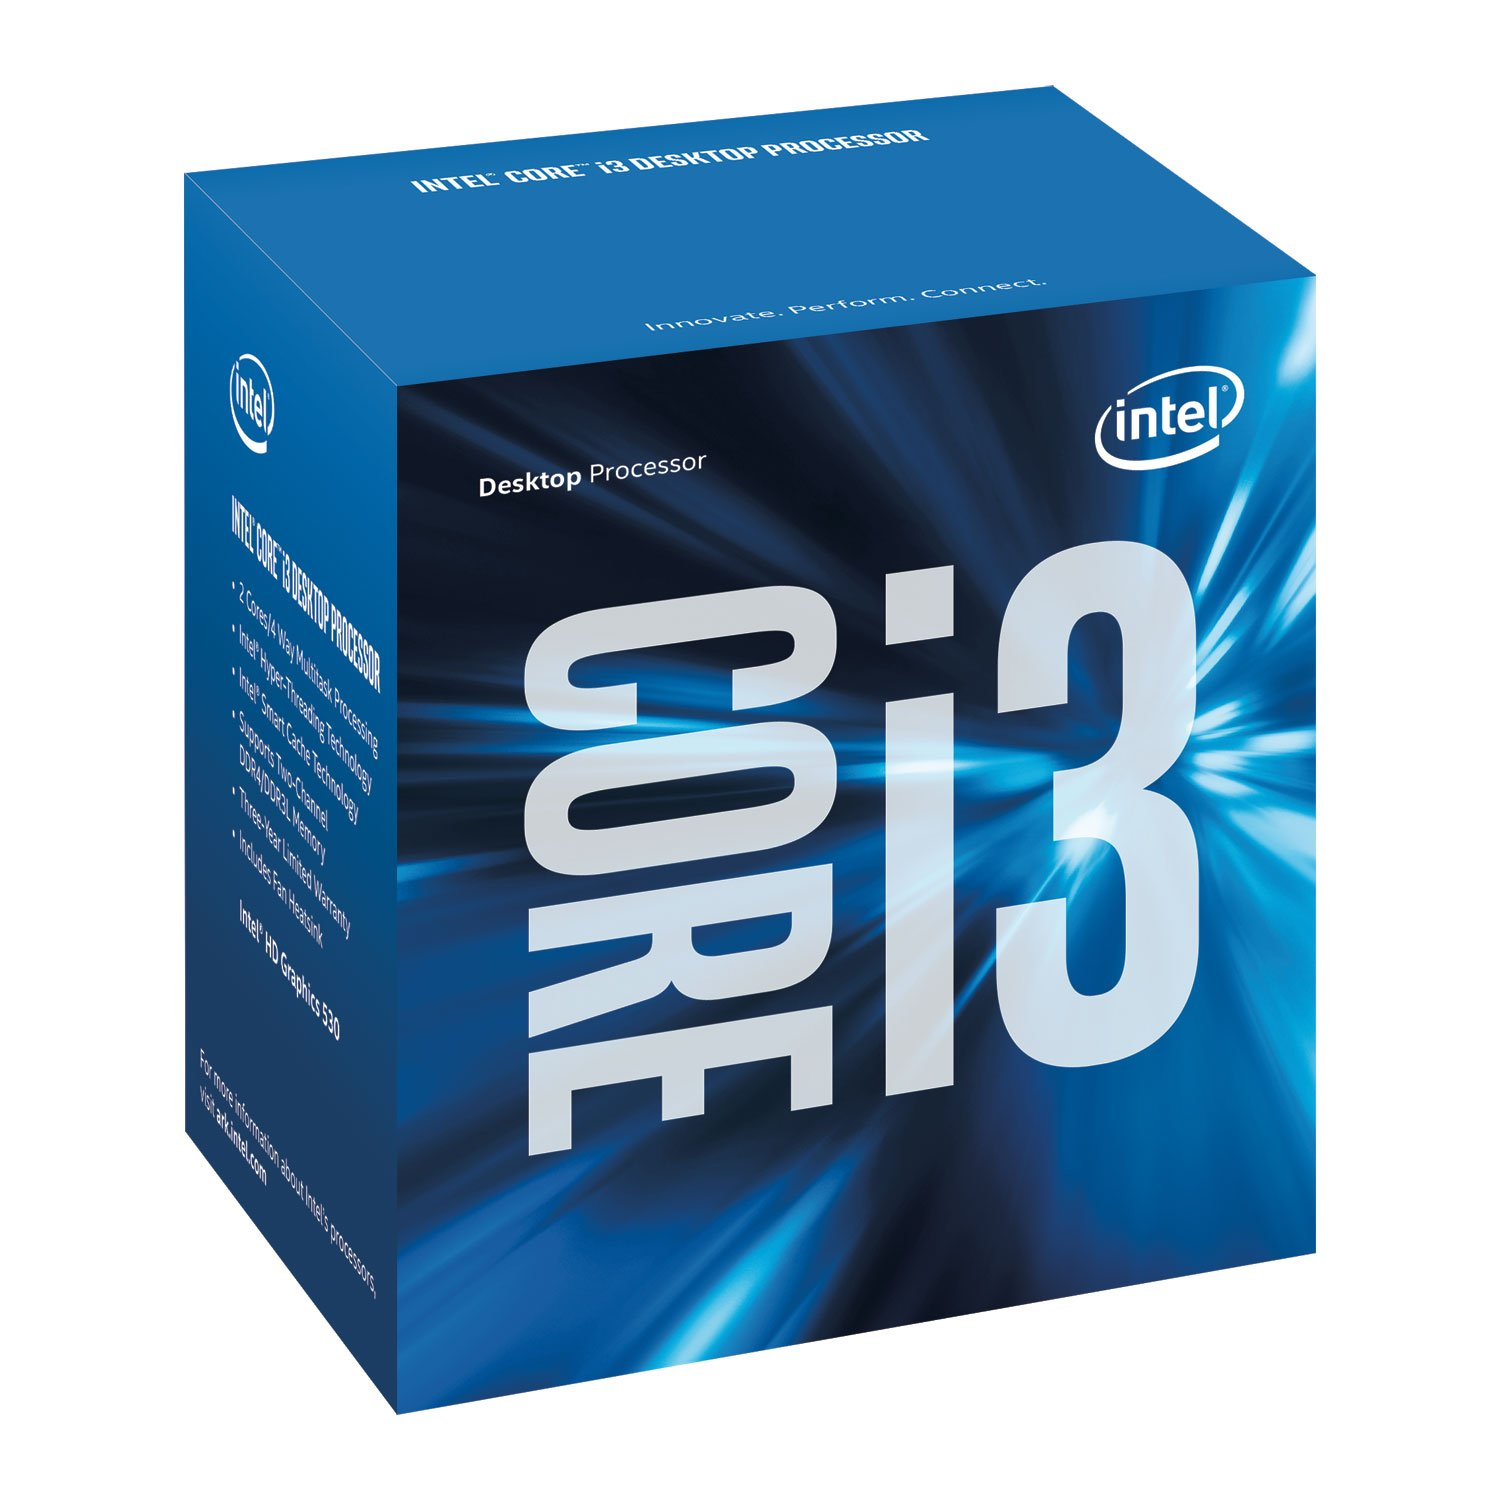 Intel 3.70 GHz Core i3-6100 3M Cache Processor (BX80662I36100) by Intel